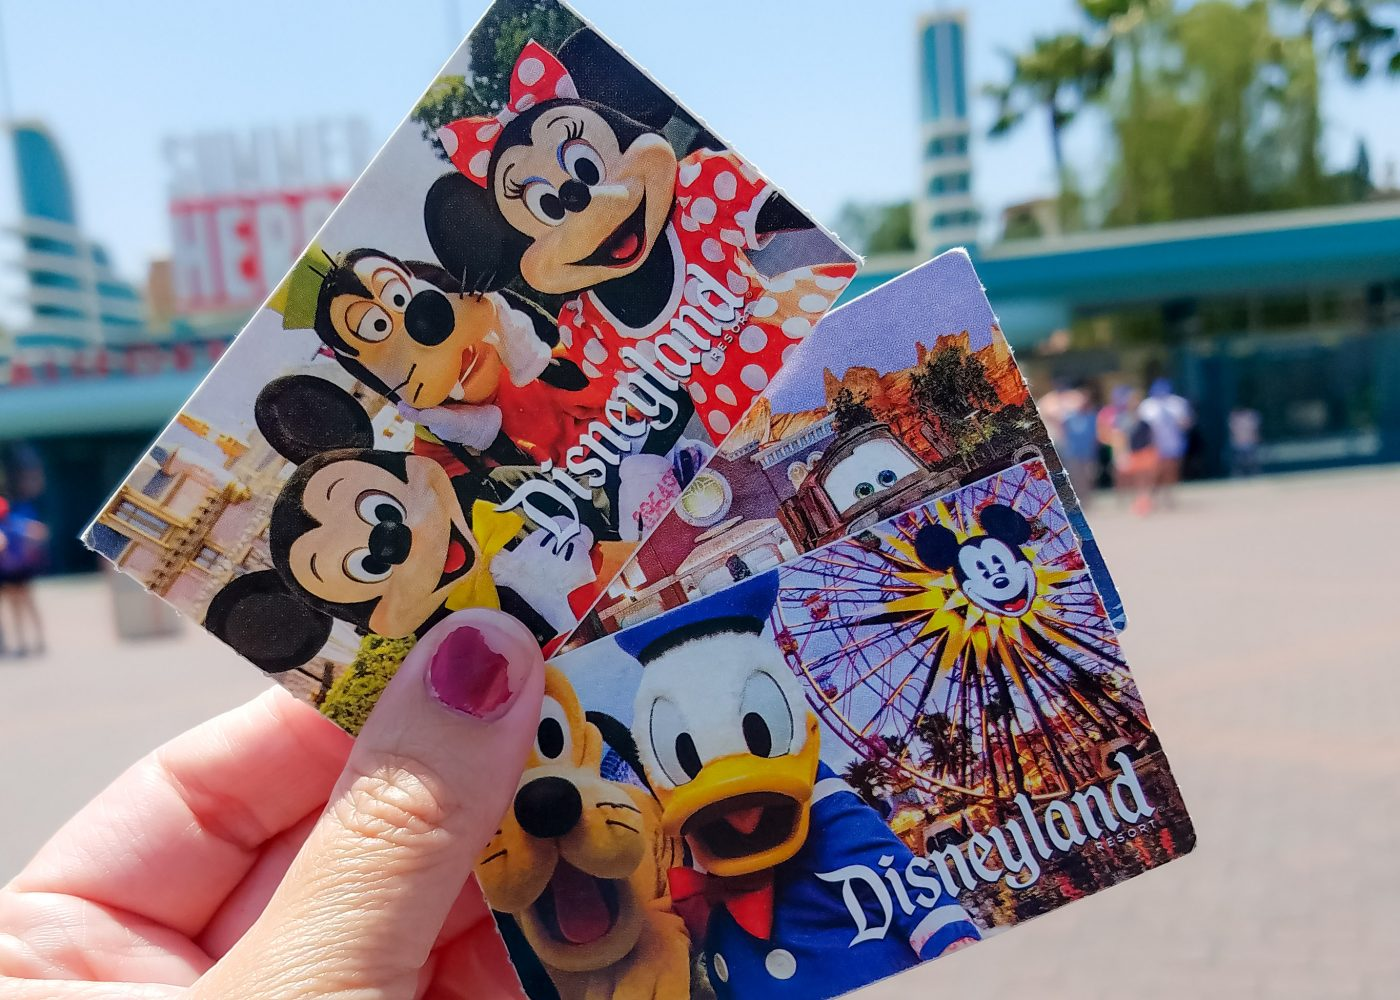 Premise Indicator Words: Everything You Need To Know Before Buying Disneyland Tickets